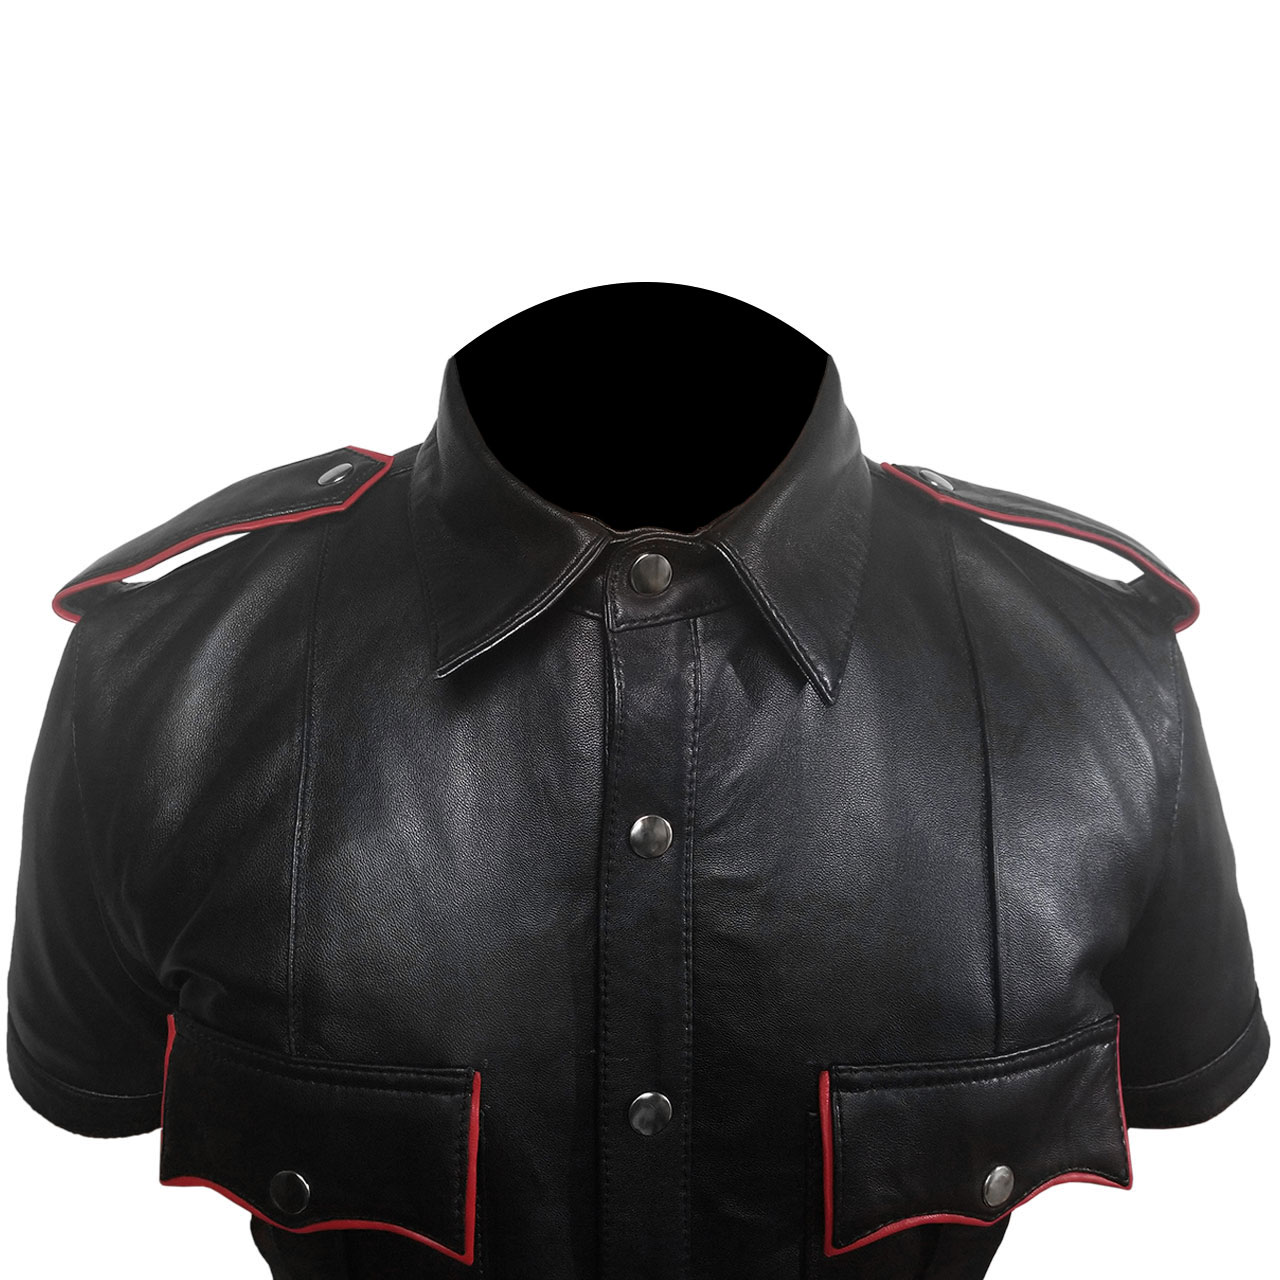 Mens Black and Red Sheep or Cow Leather Police Uniform Shirt Cop Leather Shirt